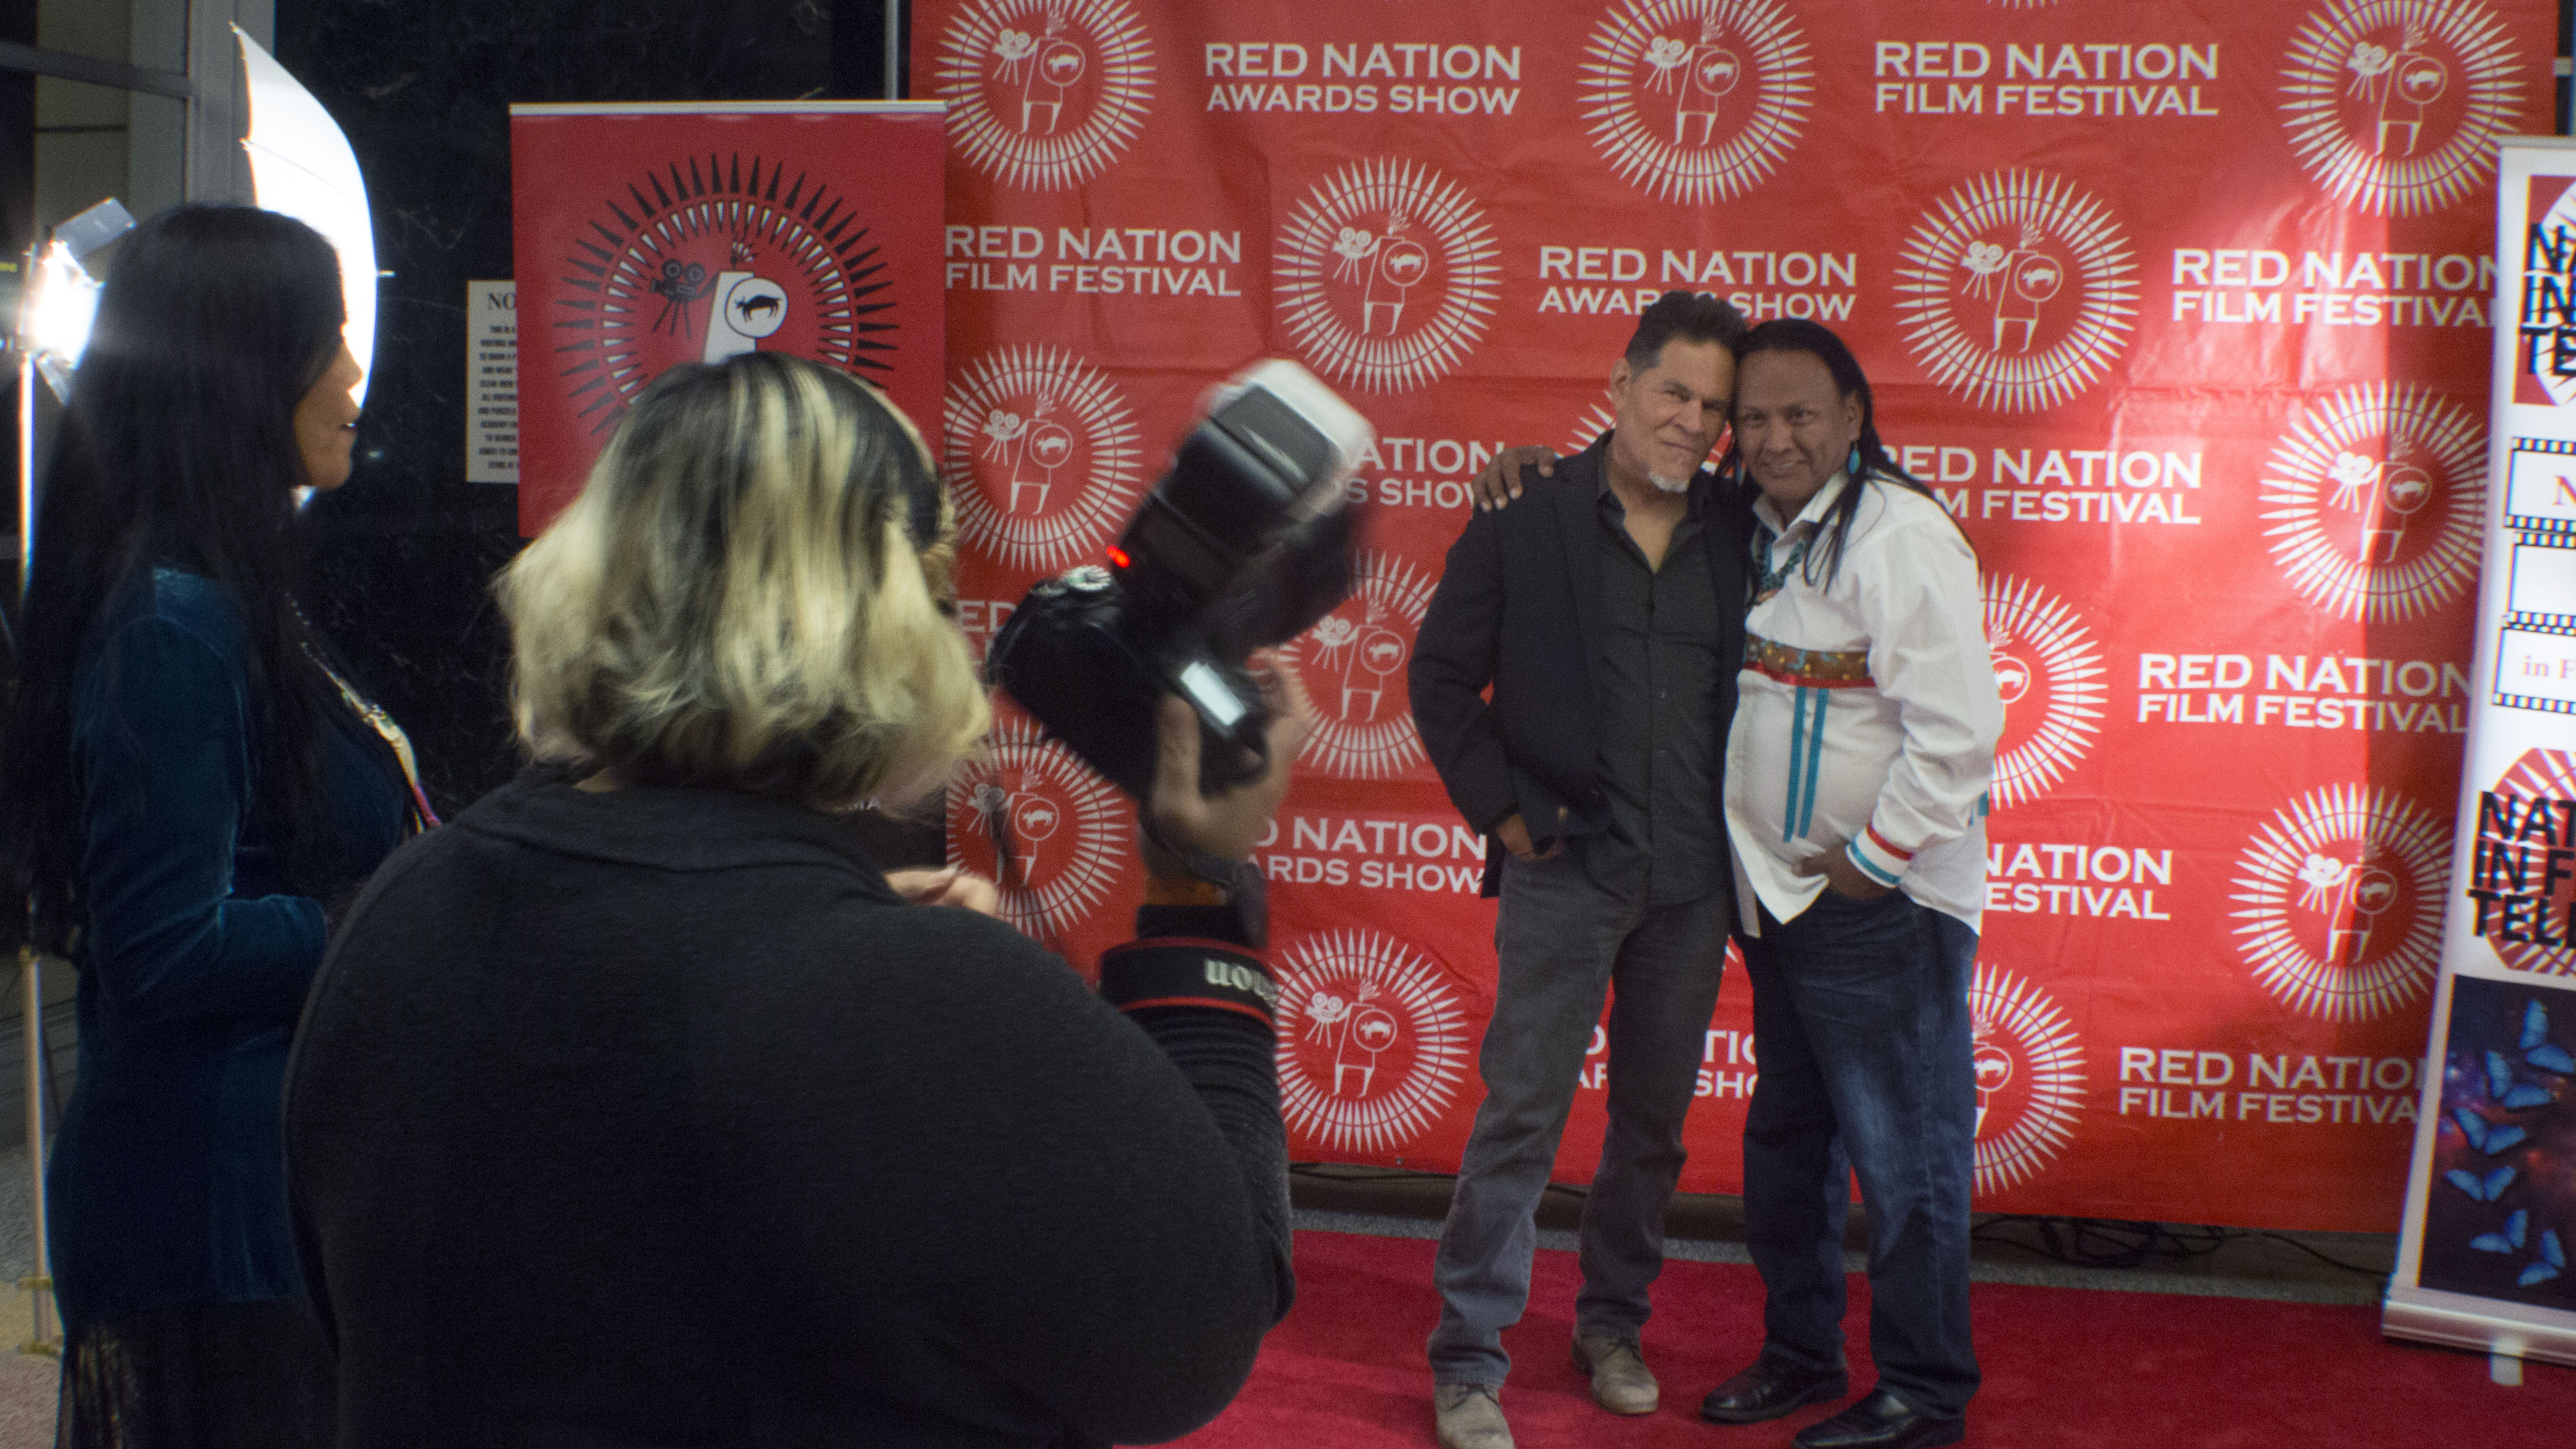 Red Nation Film Festival 2017 Photographer: Sam Moszkowicz Company: Jesse Watrous Photography and Media